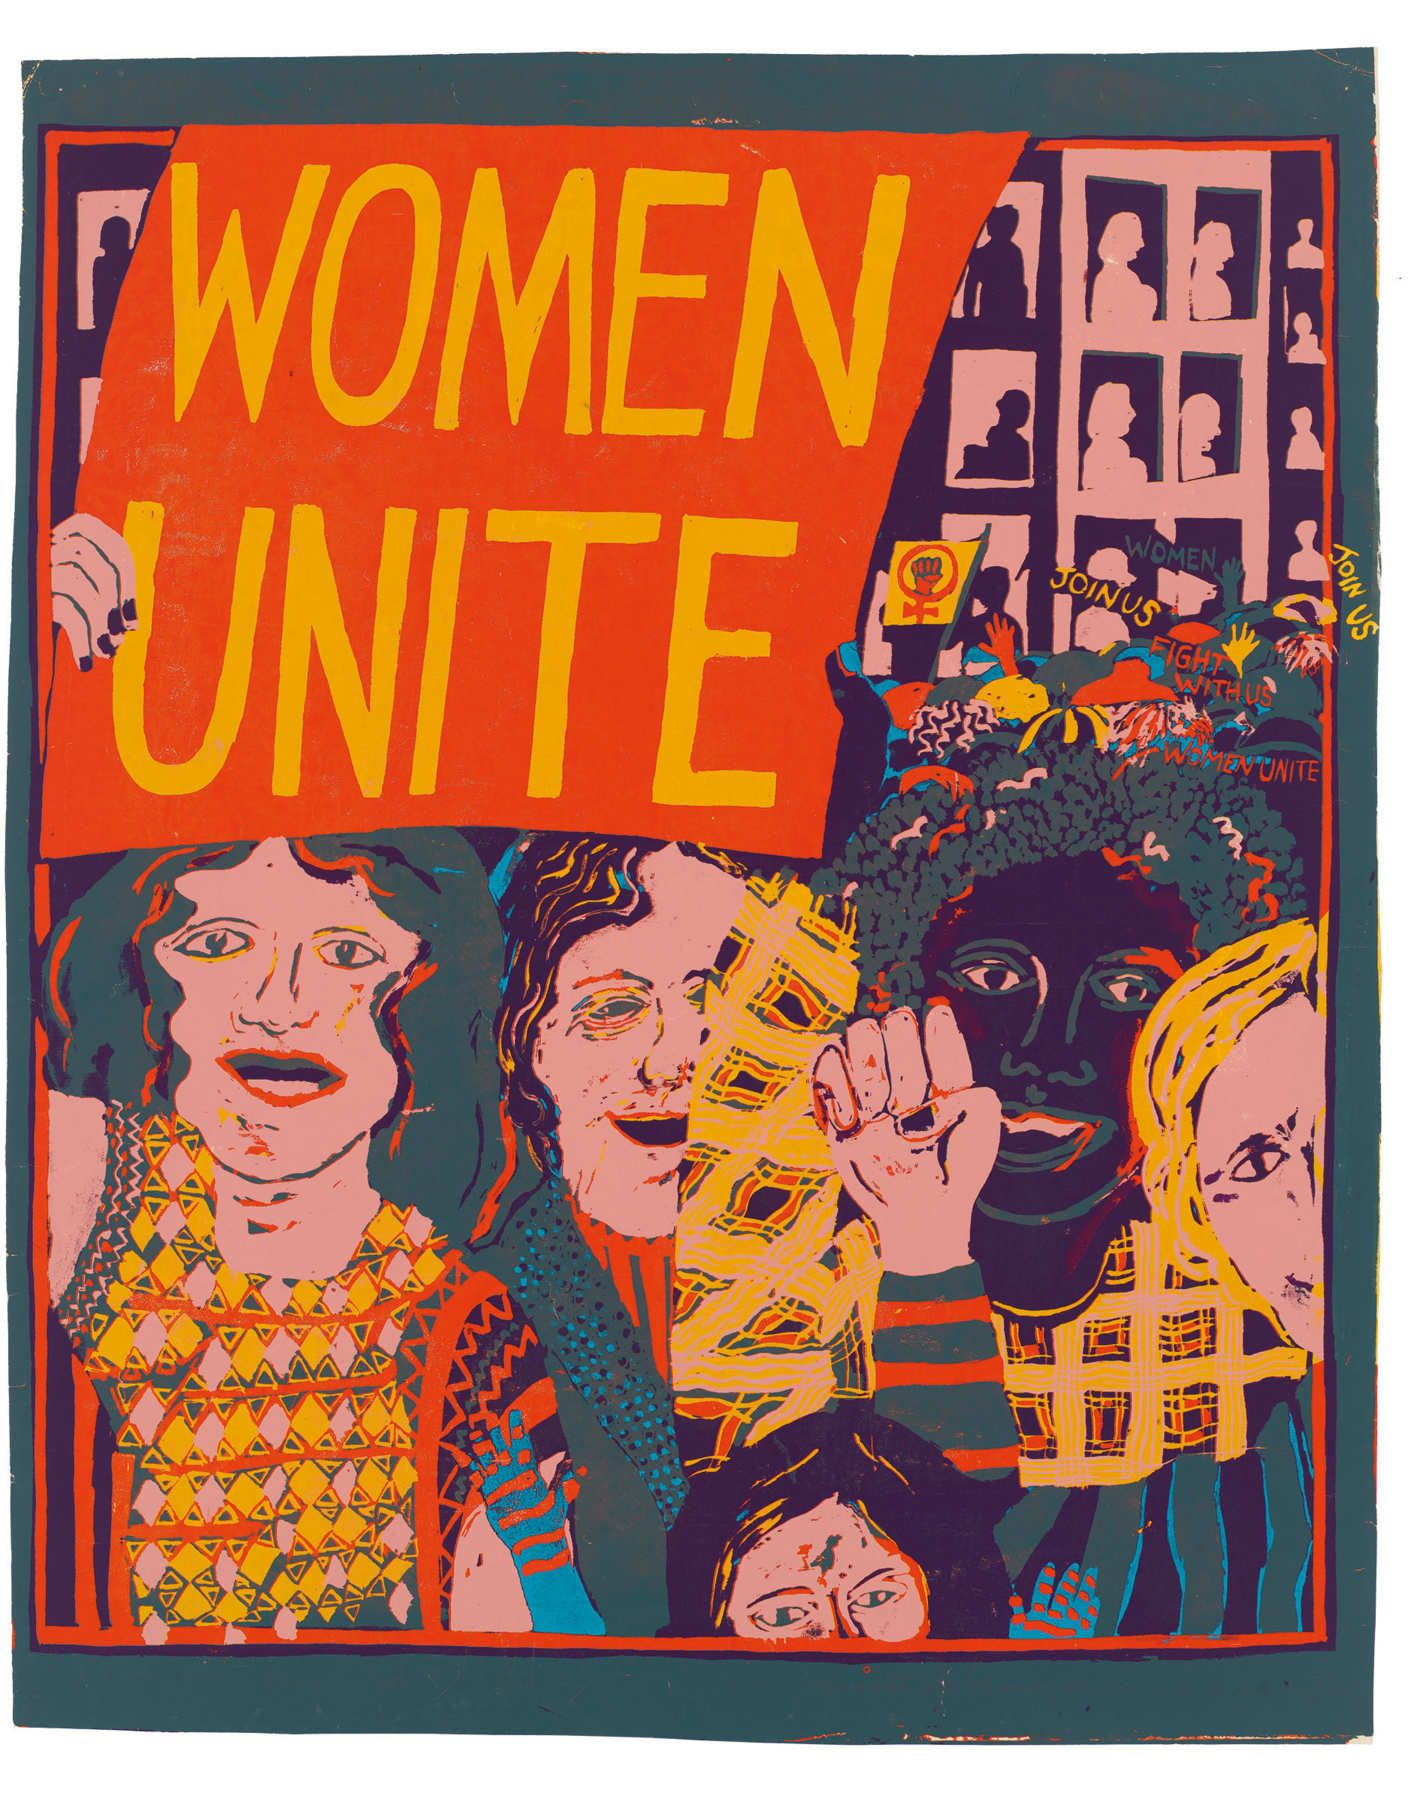 See Striking Posters Created By A 1970s Feminist Art Collective Feminist Art Feminism Poster Women Unite